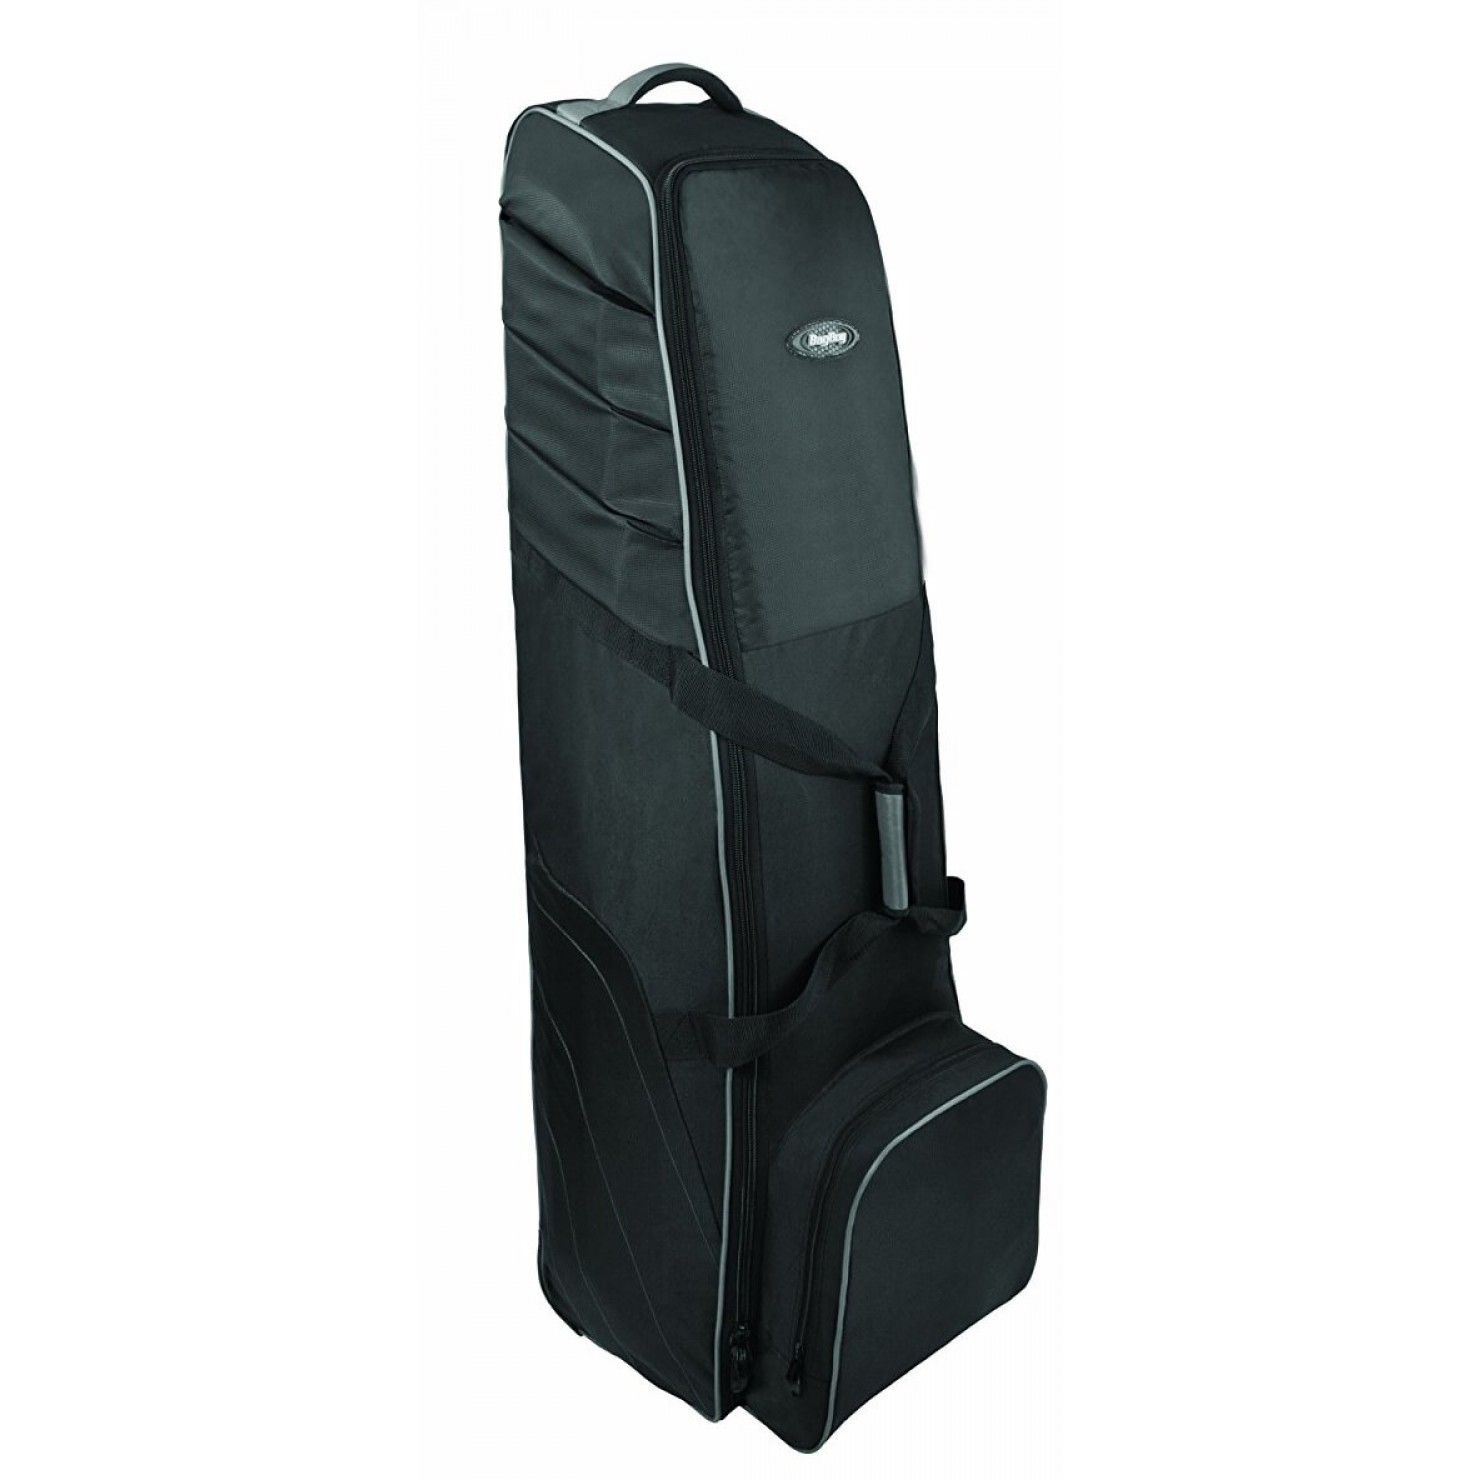 Bag Boy T-750 Travel Cover